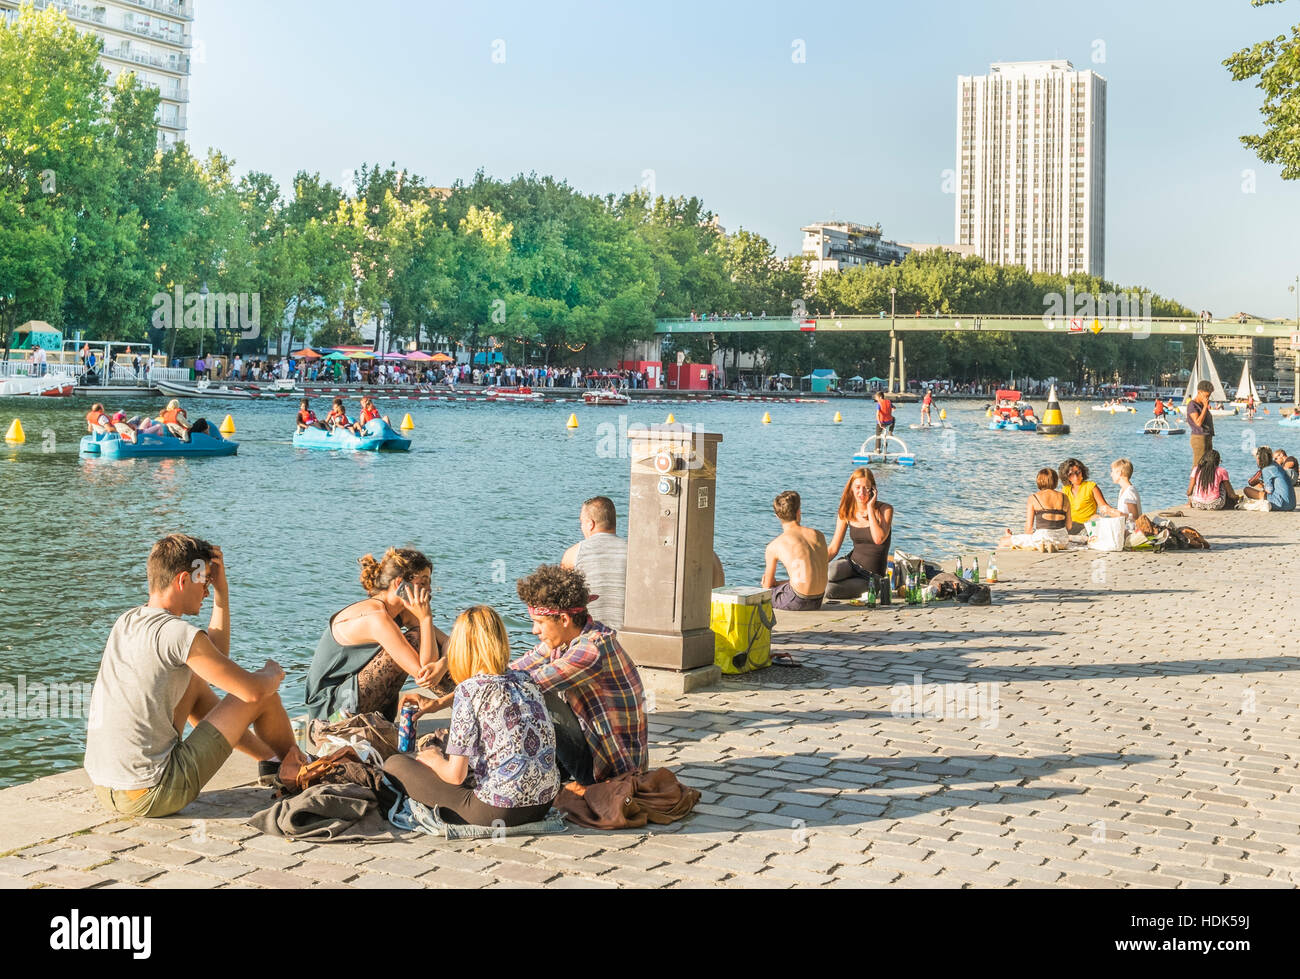 young people on the banks of river seine during paris plage in summer - Stock Image